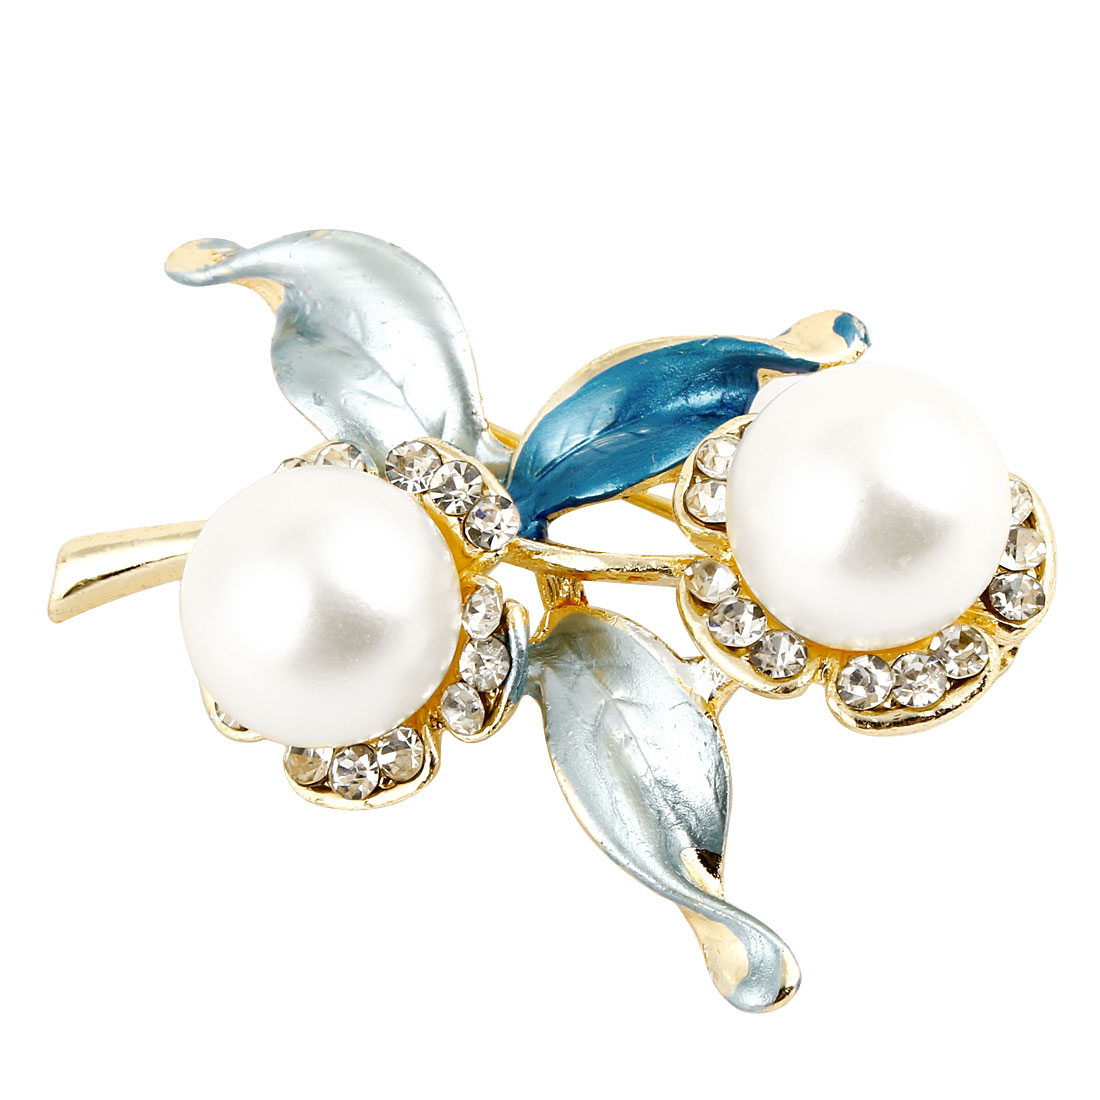 Ladies Imitation Pearl Detailing Blue Leaf Flower Shaped Pin Brooch Broach